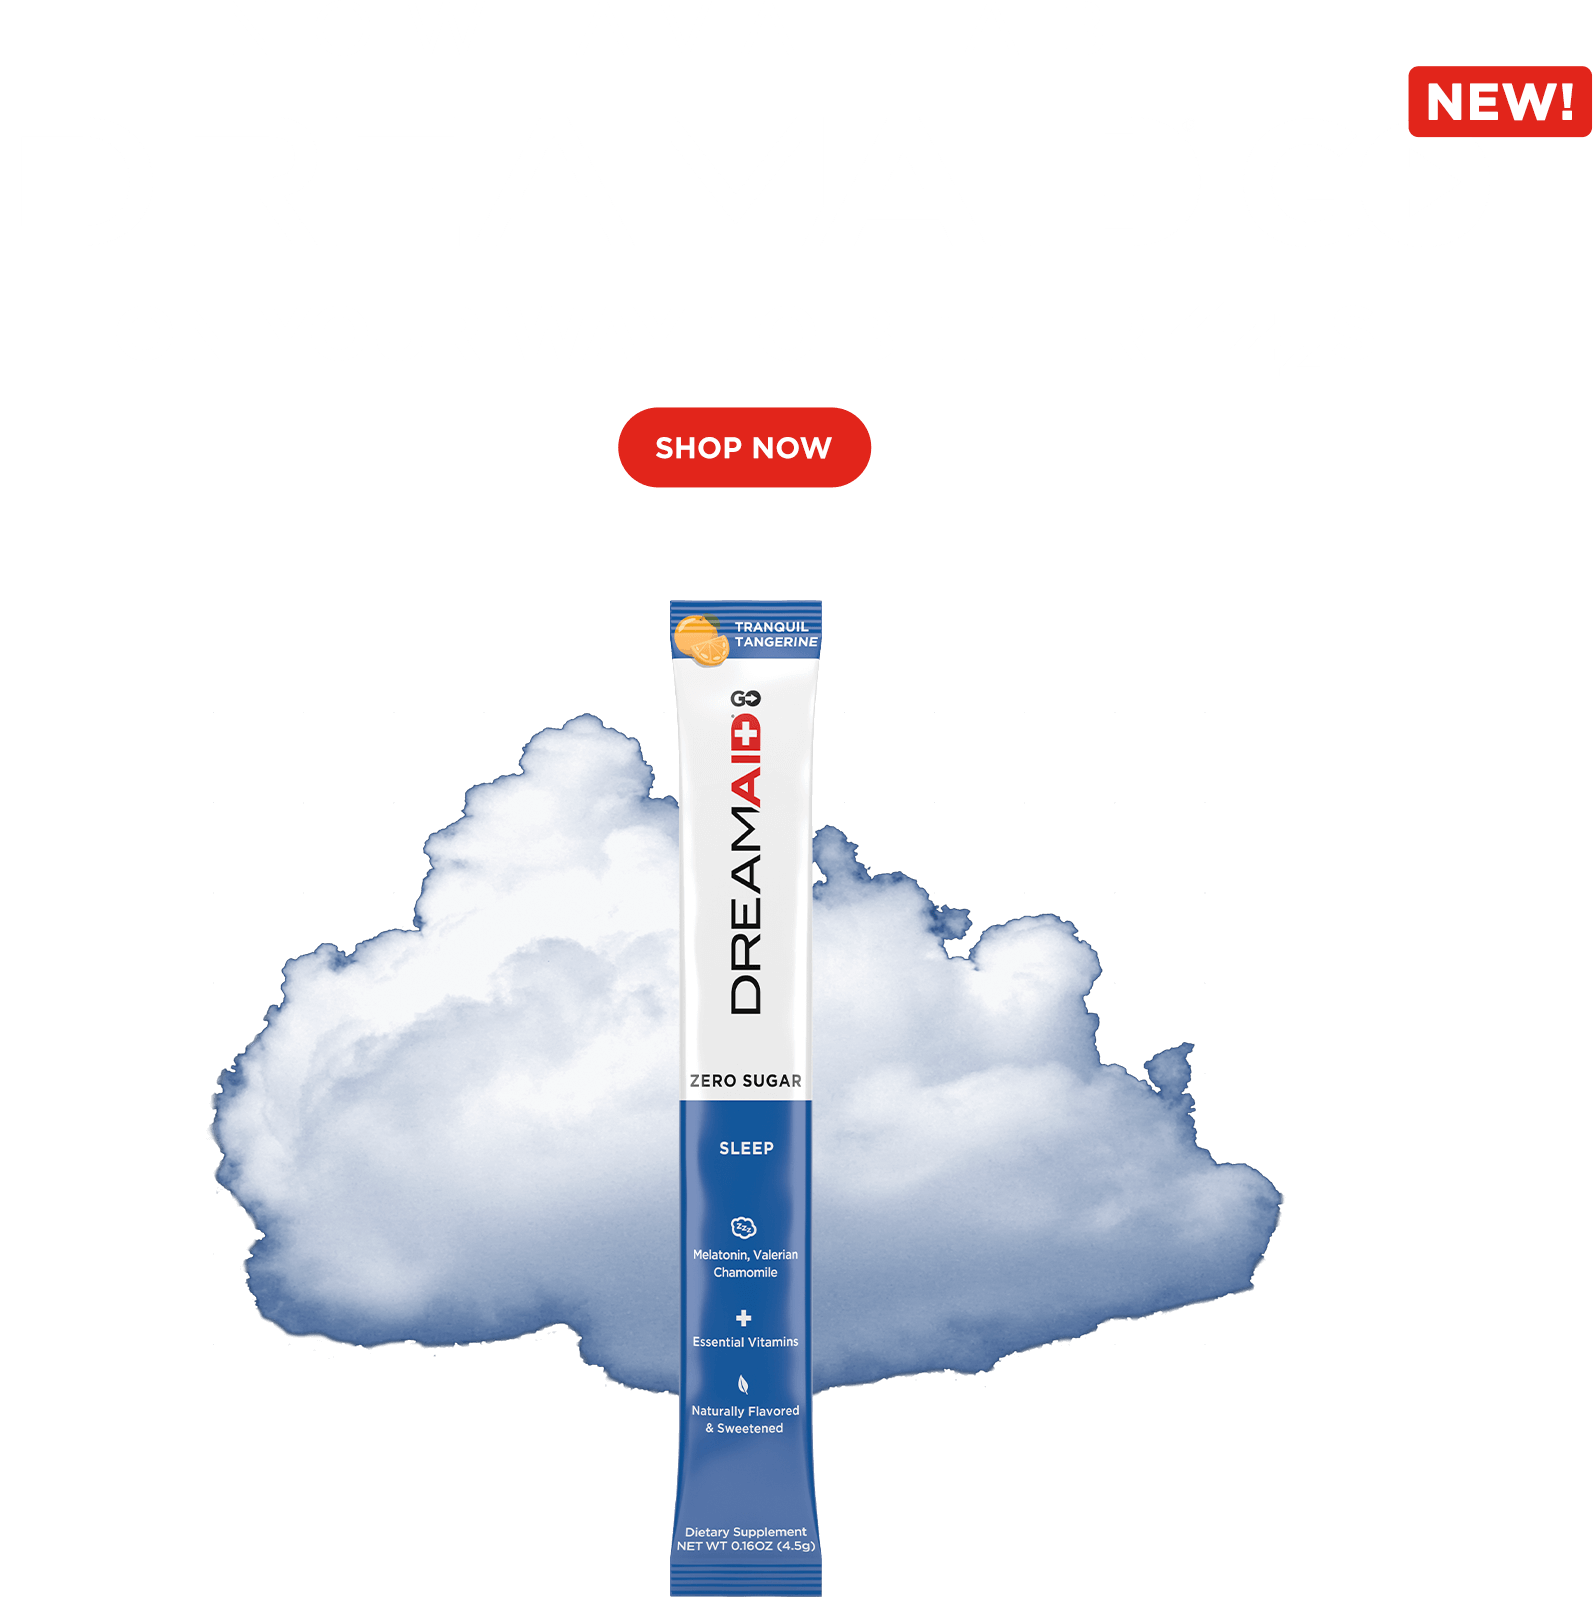 Now available DREAMAID GO on your way to better zzzs. Shop Now.